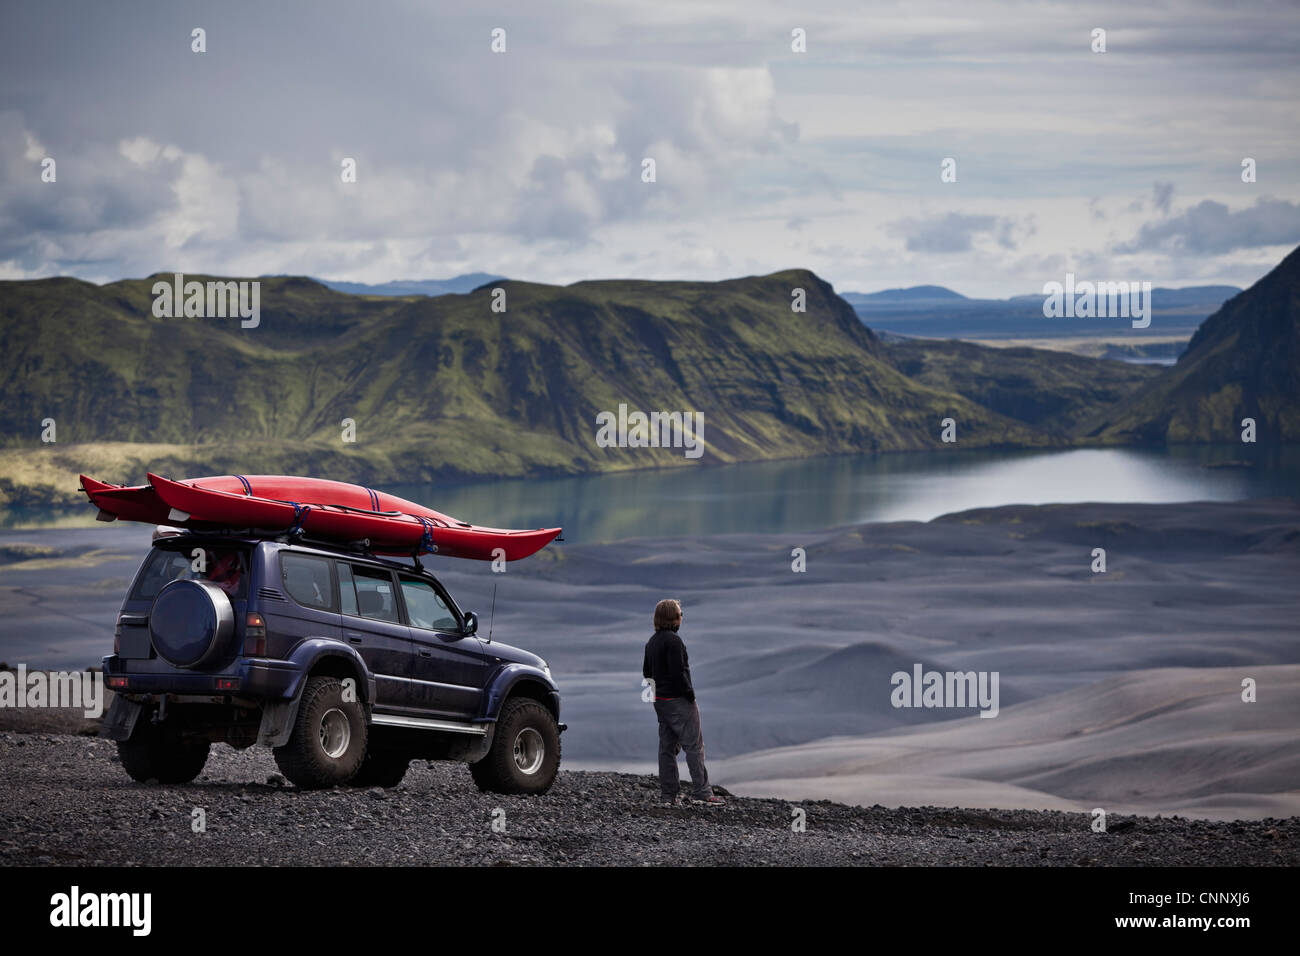 Man with Jeep admiring rural landscape - Stock Image